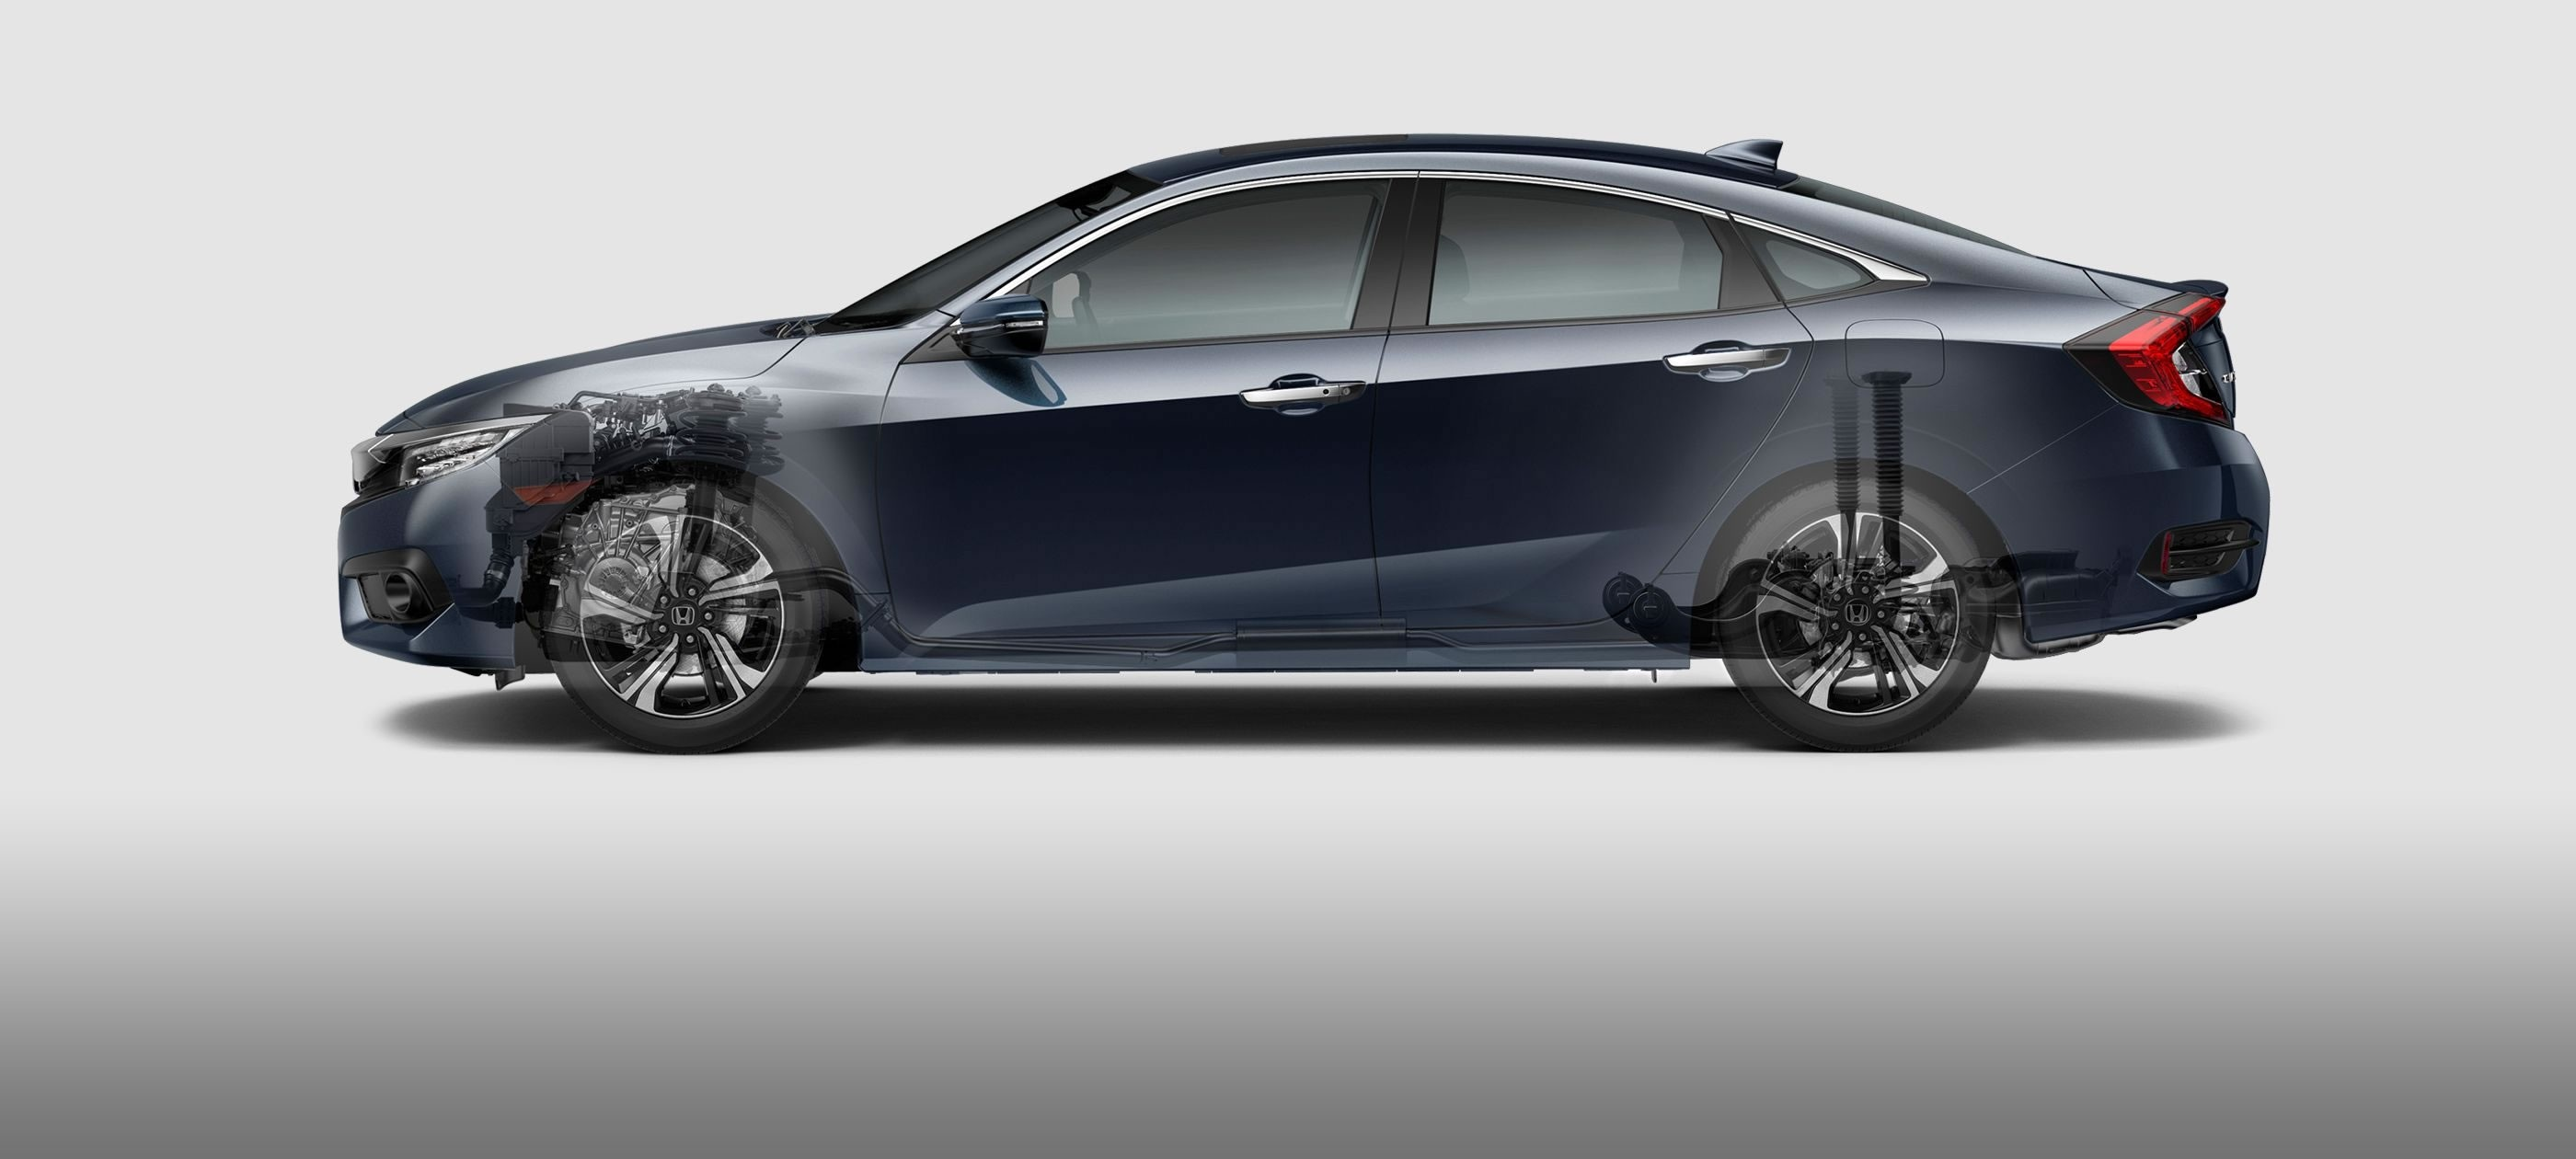 Transparent Side View of the 2017 Honda Civic Showing the Suspension and the Engine